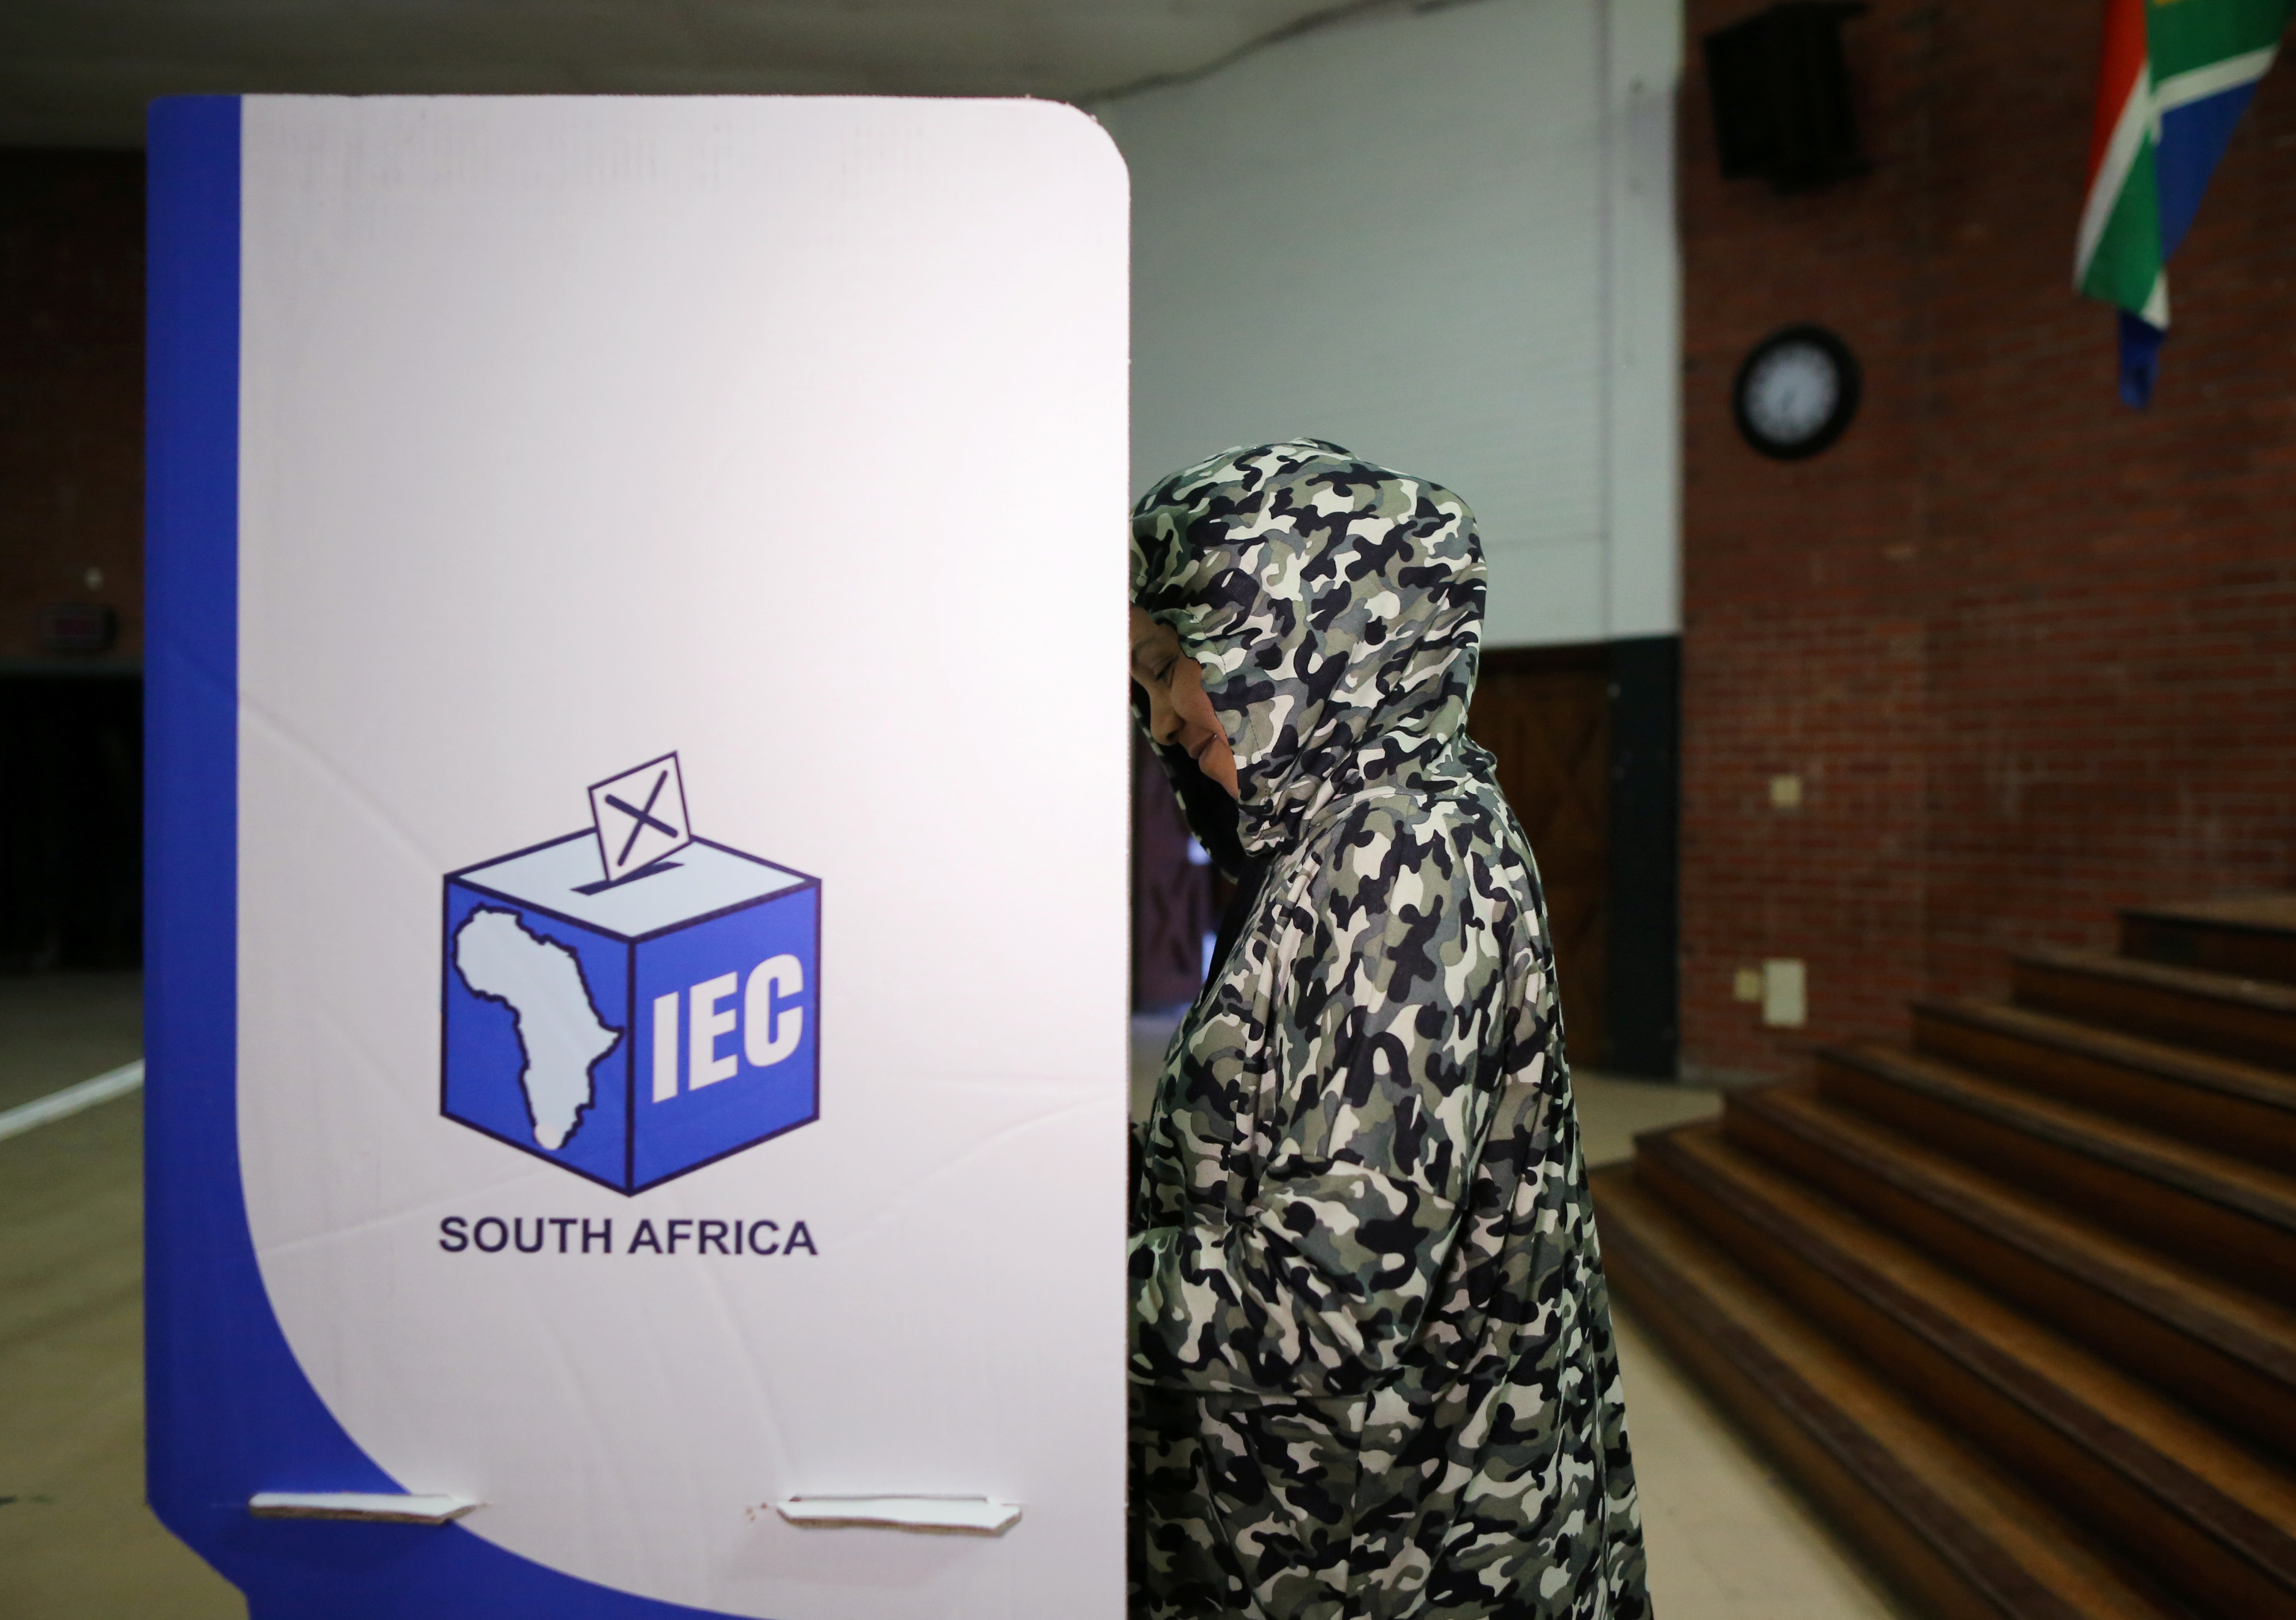 Waeeda Salie,  casts her ballot at a polling station, during the South Africa's parliamentary and provincial elections, in Cape Town, South Africa, May 8, 2019. REUTERS/Sumaya Hisham